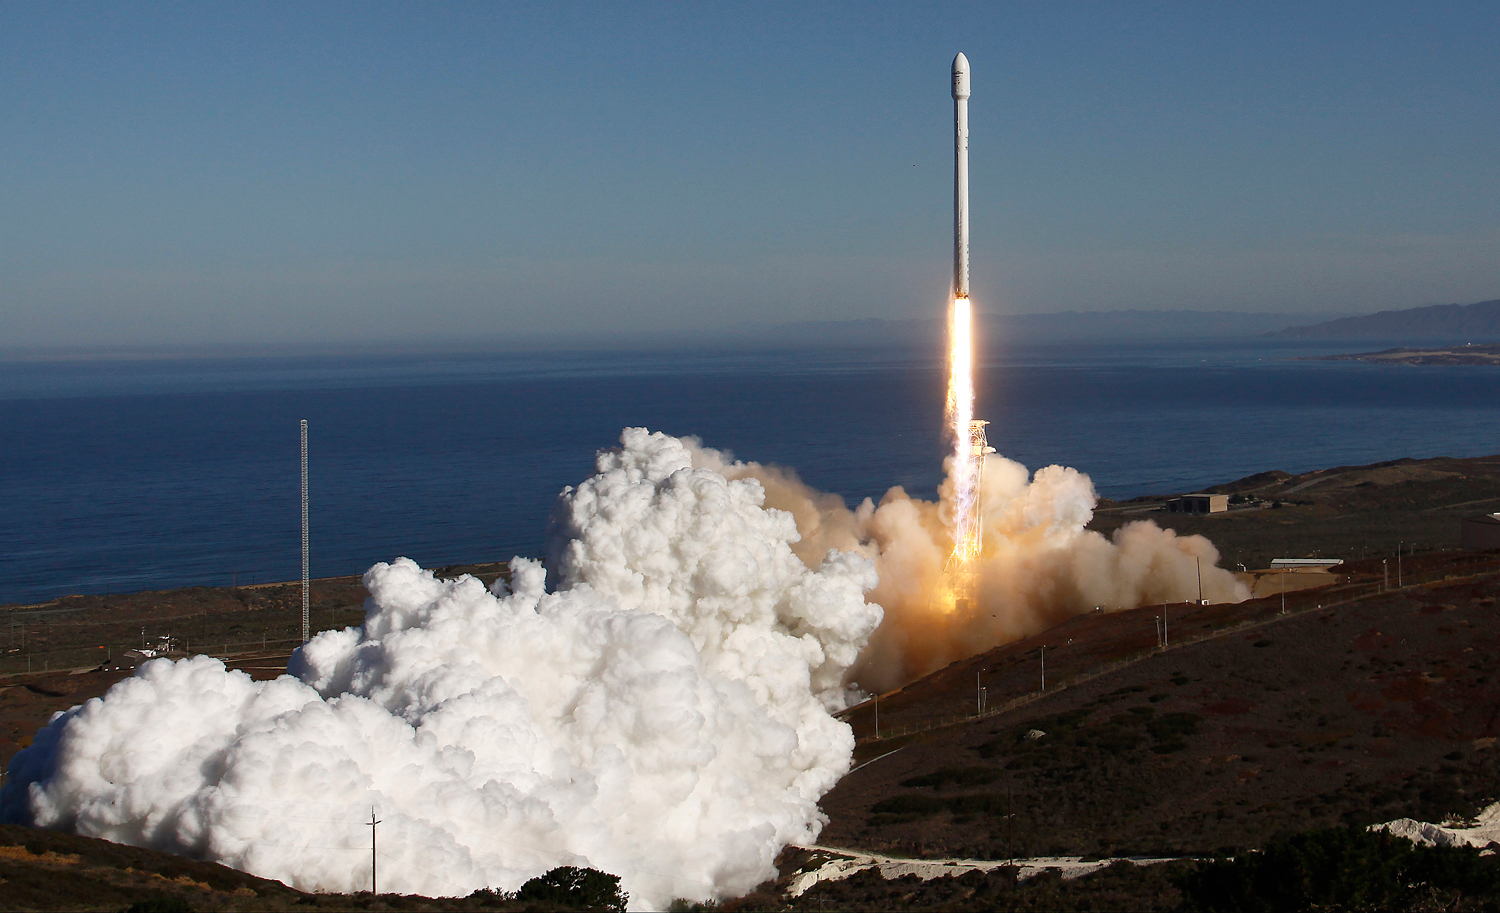 A Falcon 9 rocket carrying a small science satellite for Canada is launched from a newly refurbished launch pad in Vandenberg Air Force Station in California, on Sept. 29, 2013.